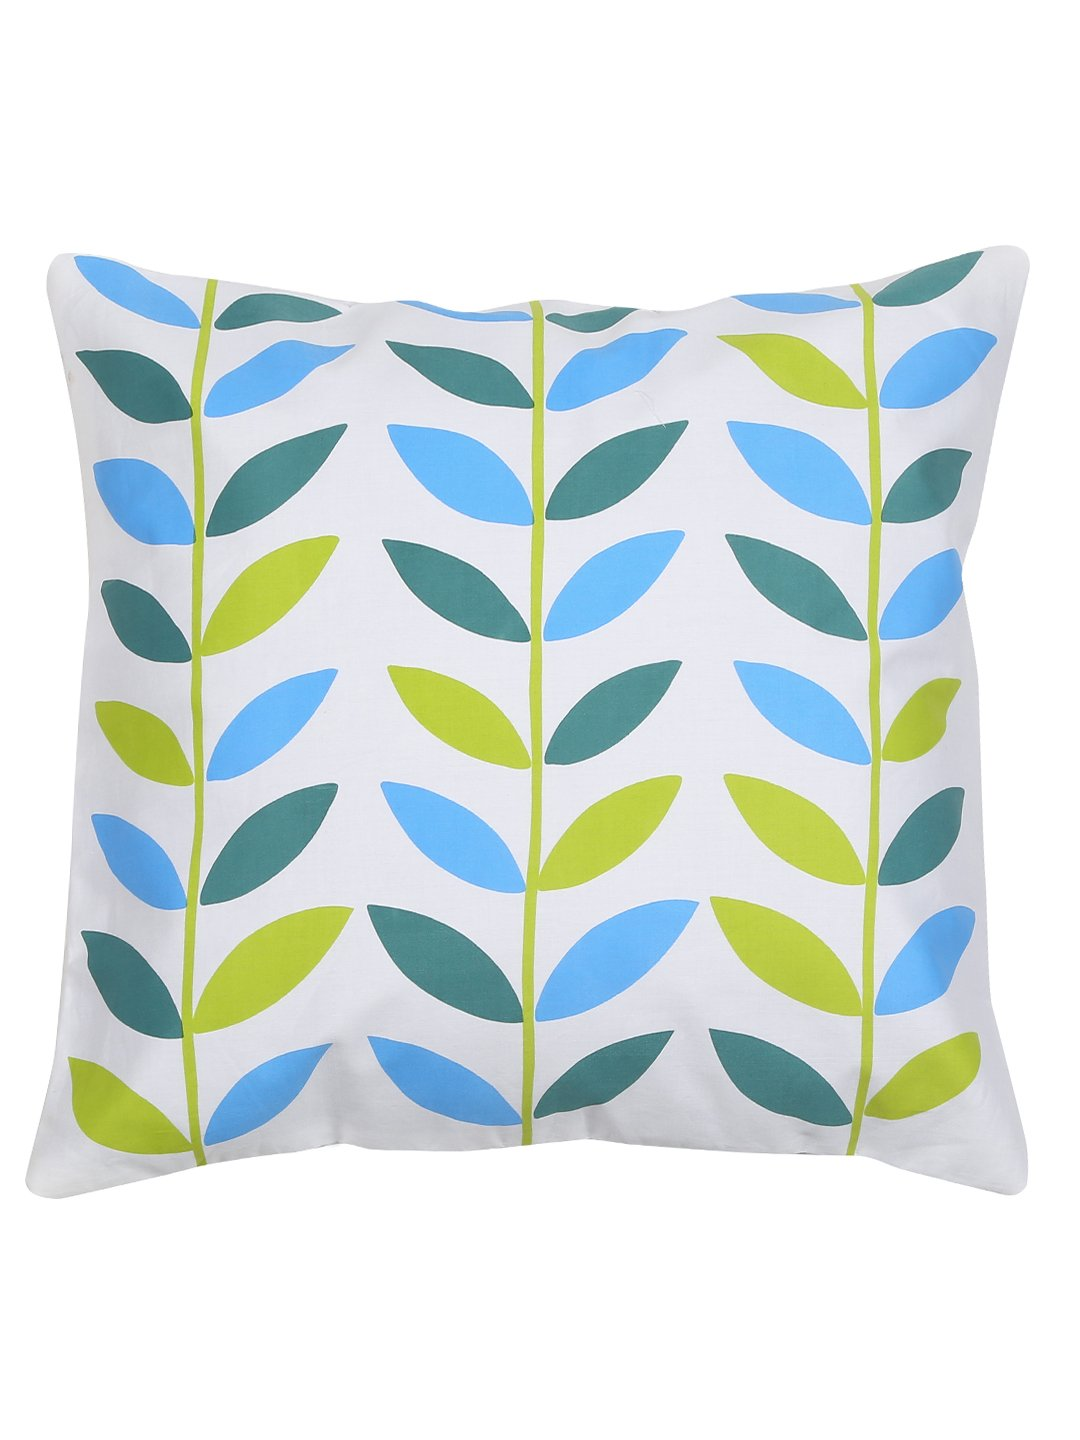 Handcrafted Spring Leaves Cushion Cover Set of 5